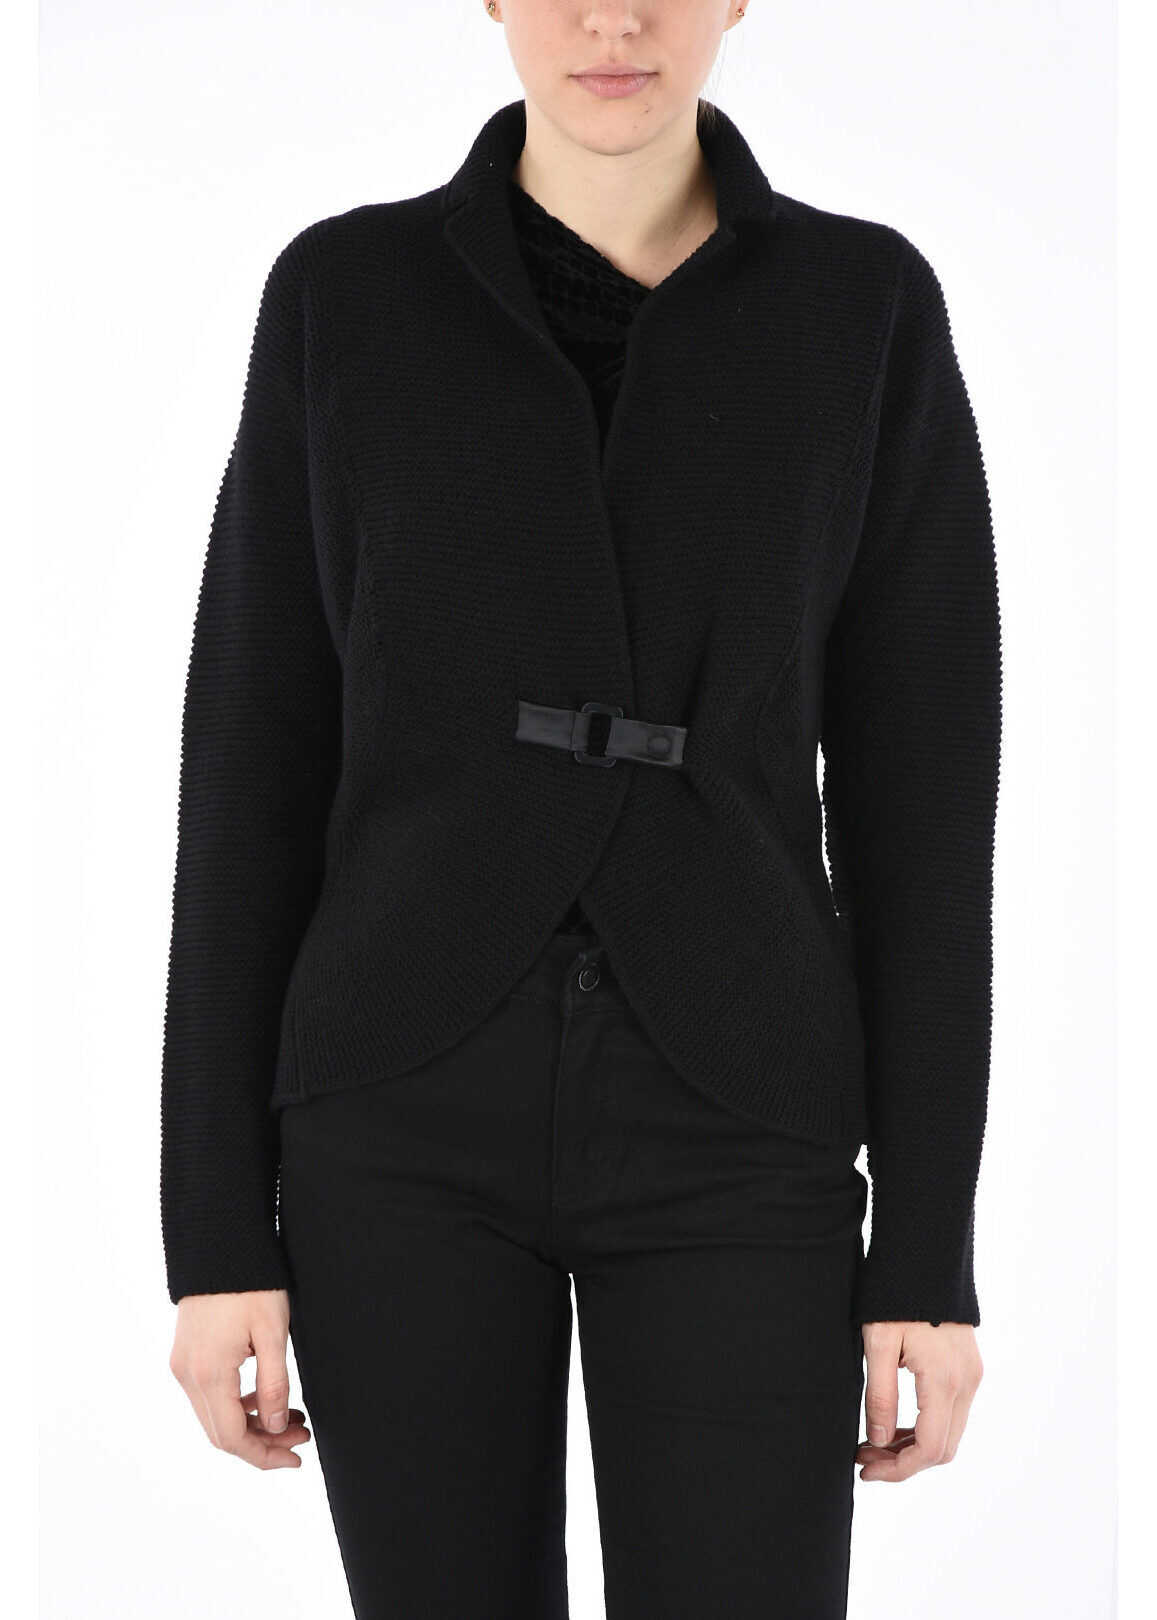 Armani COLLEZIONI Wool and Cashmere Cardigan BLACK